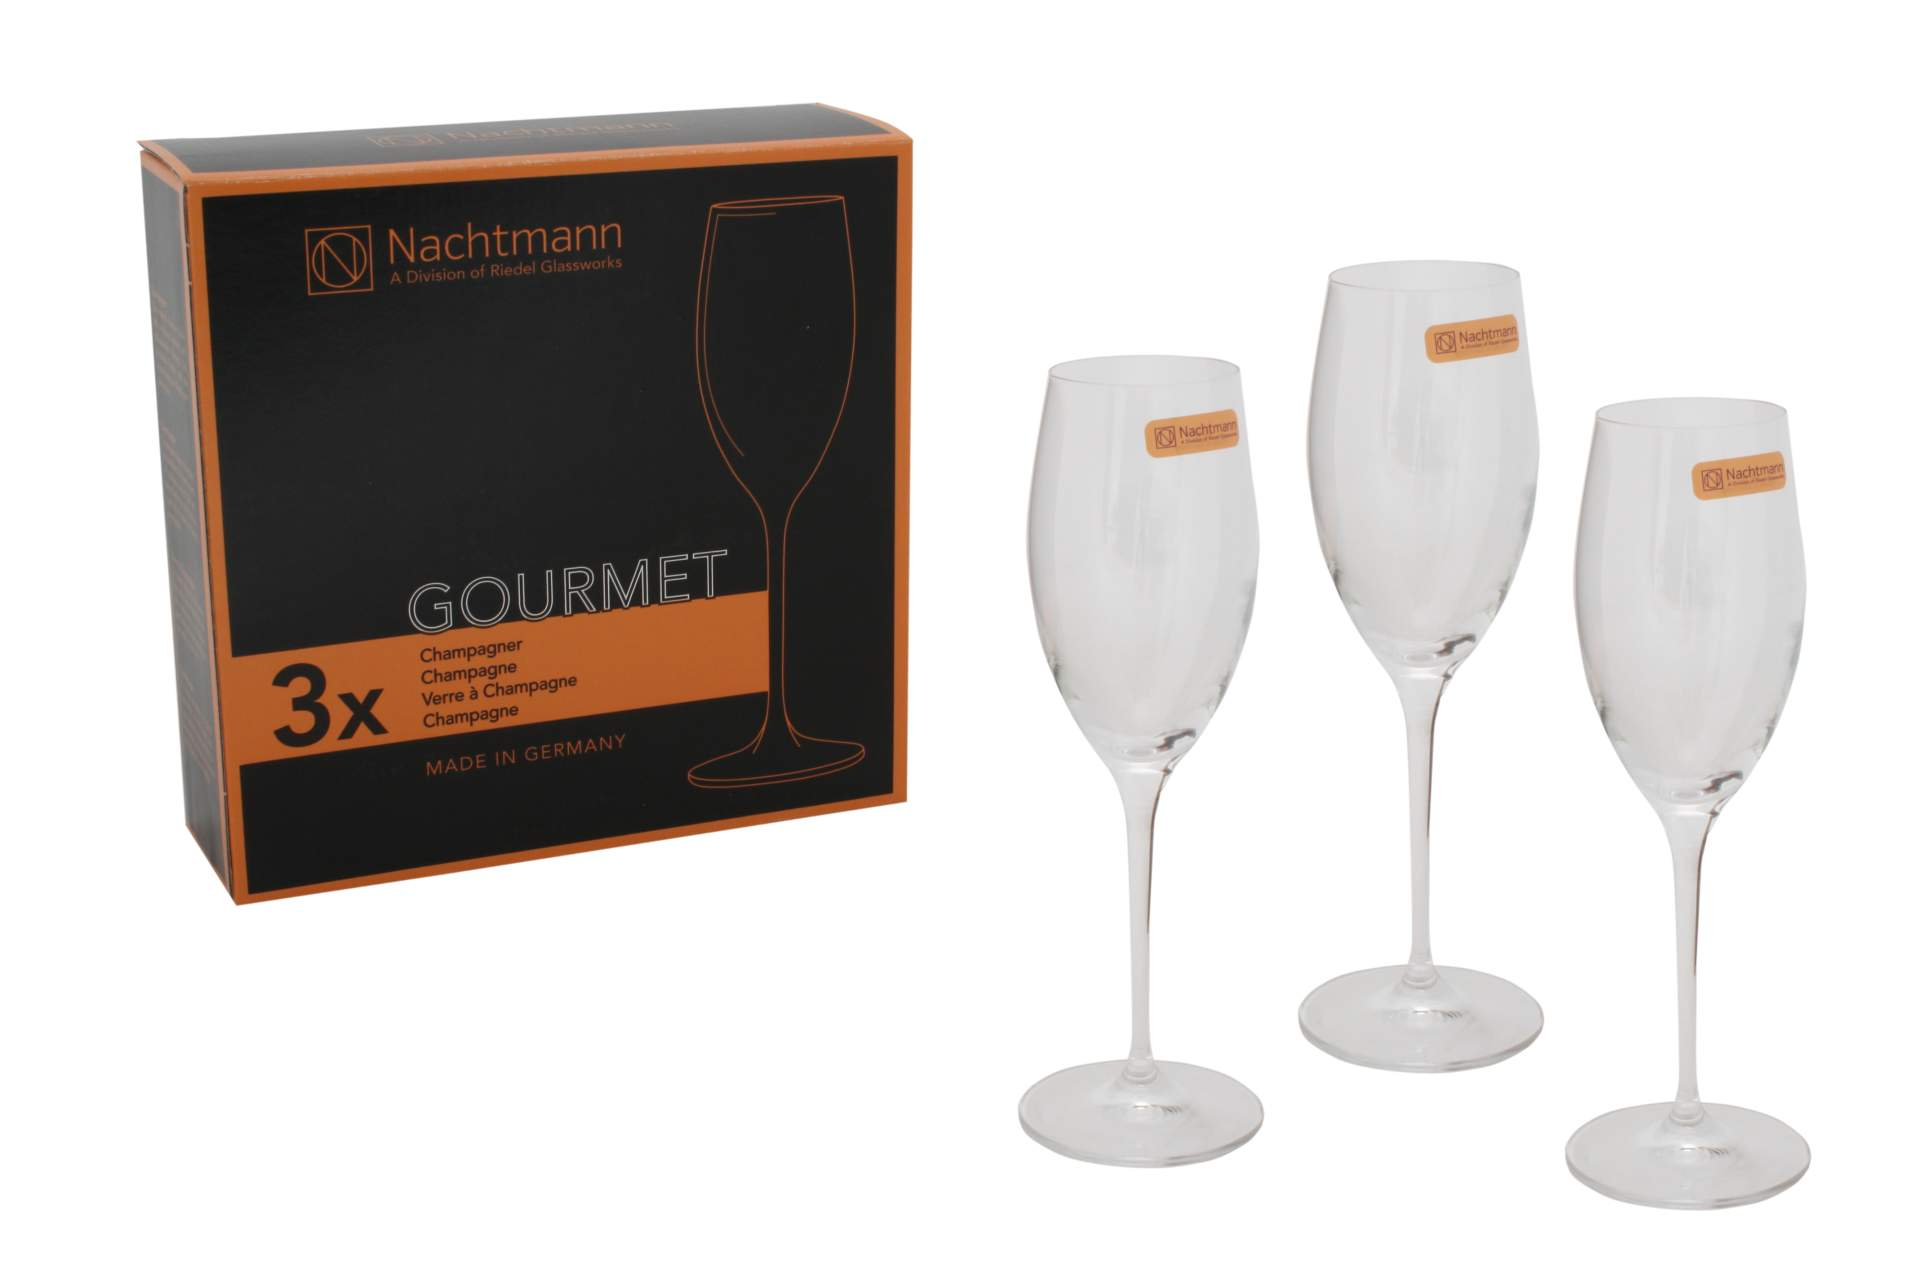 champagner gl ser 3 er set nachtmann serie gourmet sekt pokal kristall glas neu ebay. Black Bedroom Furniture Sets. Home Design Ideas